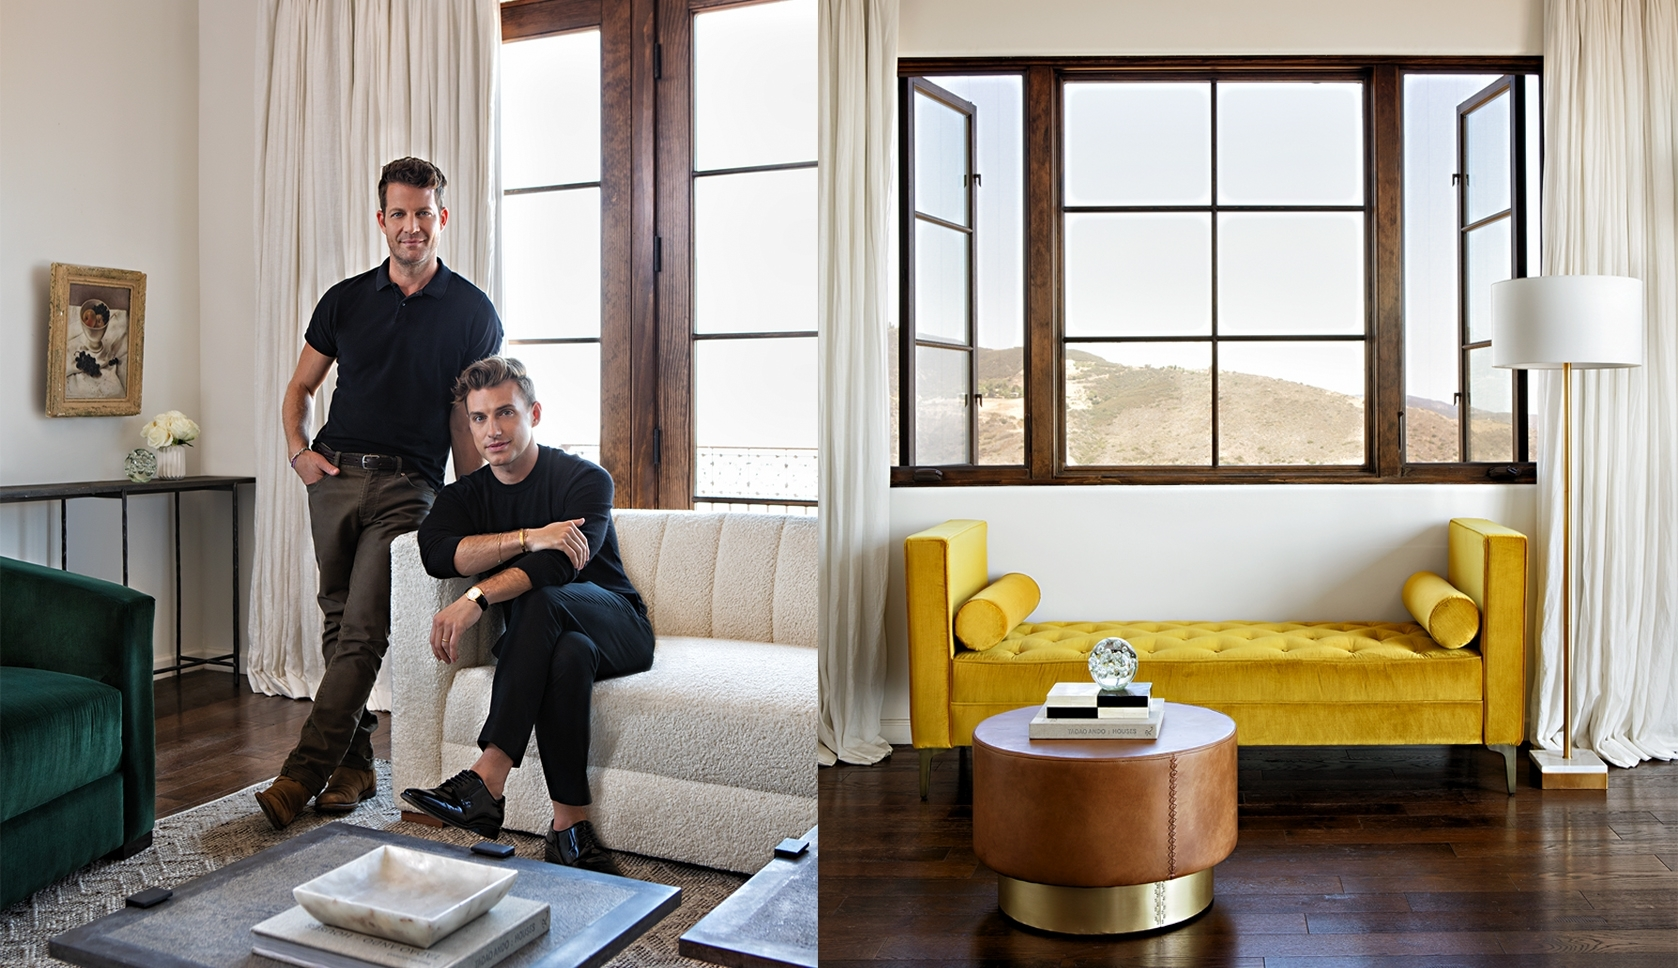 Nate Berkus & Jeremiah Brent's Newest Affordable Collection | Rue Intended For Whitley 3 Piece Sectionals By Nate Berkus And Jeremiah Brent (View 17 of 25)